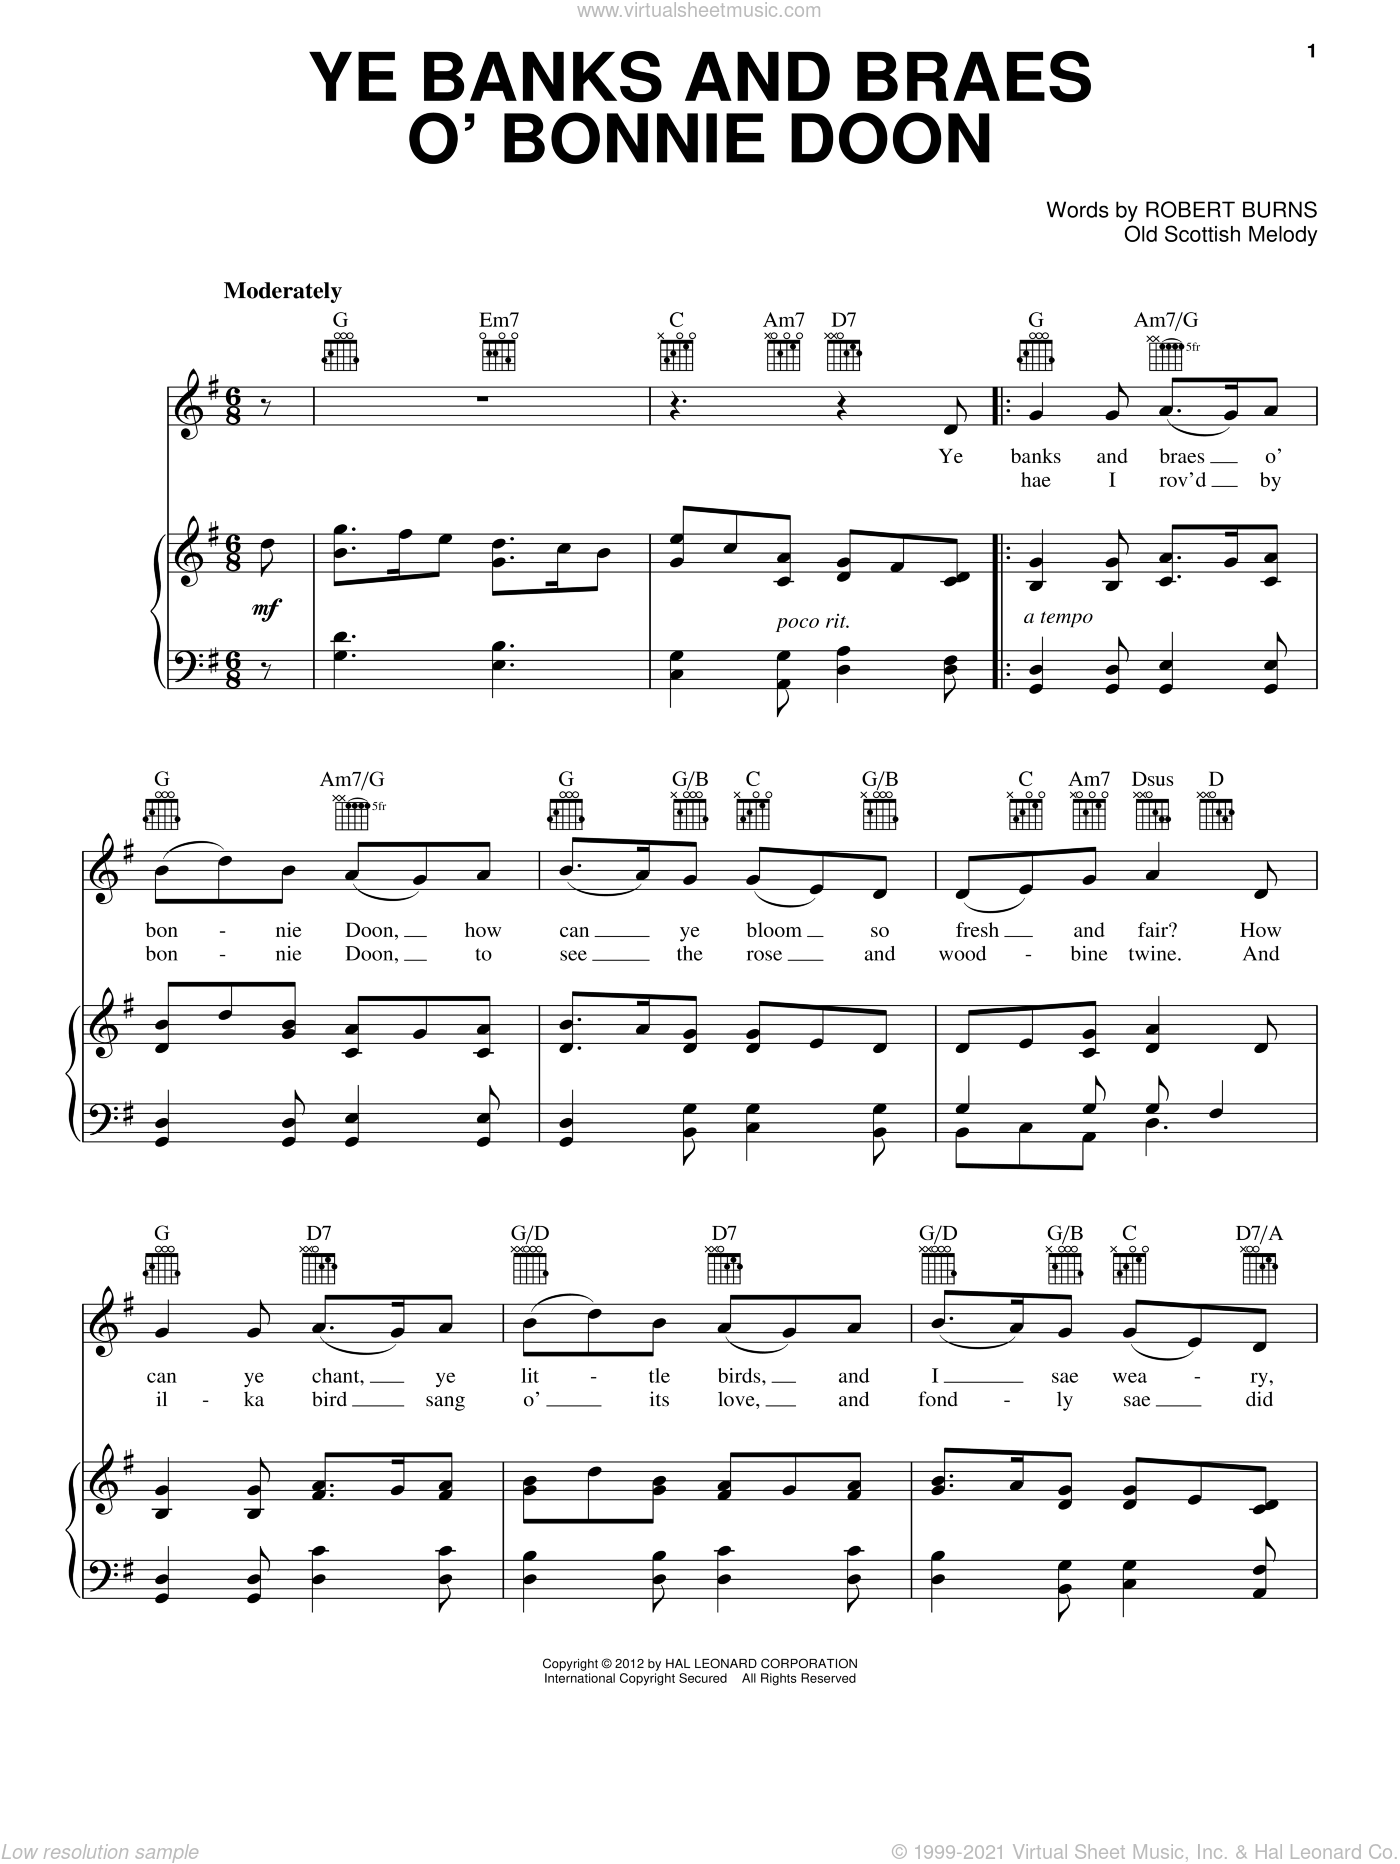 Ye Banks And Braes O' Bonnie Doon sheet music for voice, piano or guitar by Robert Burns. Score Image Preview.